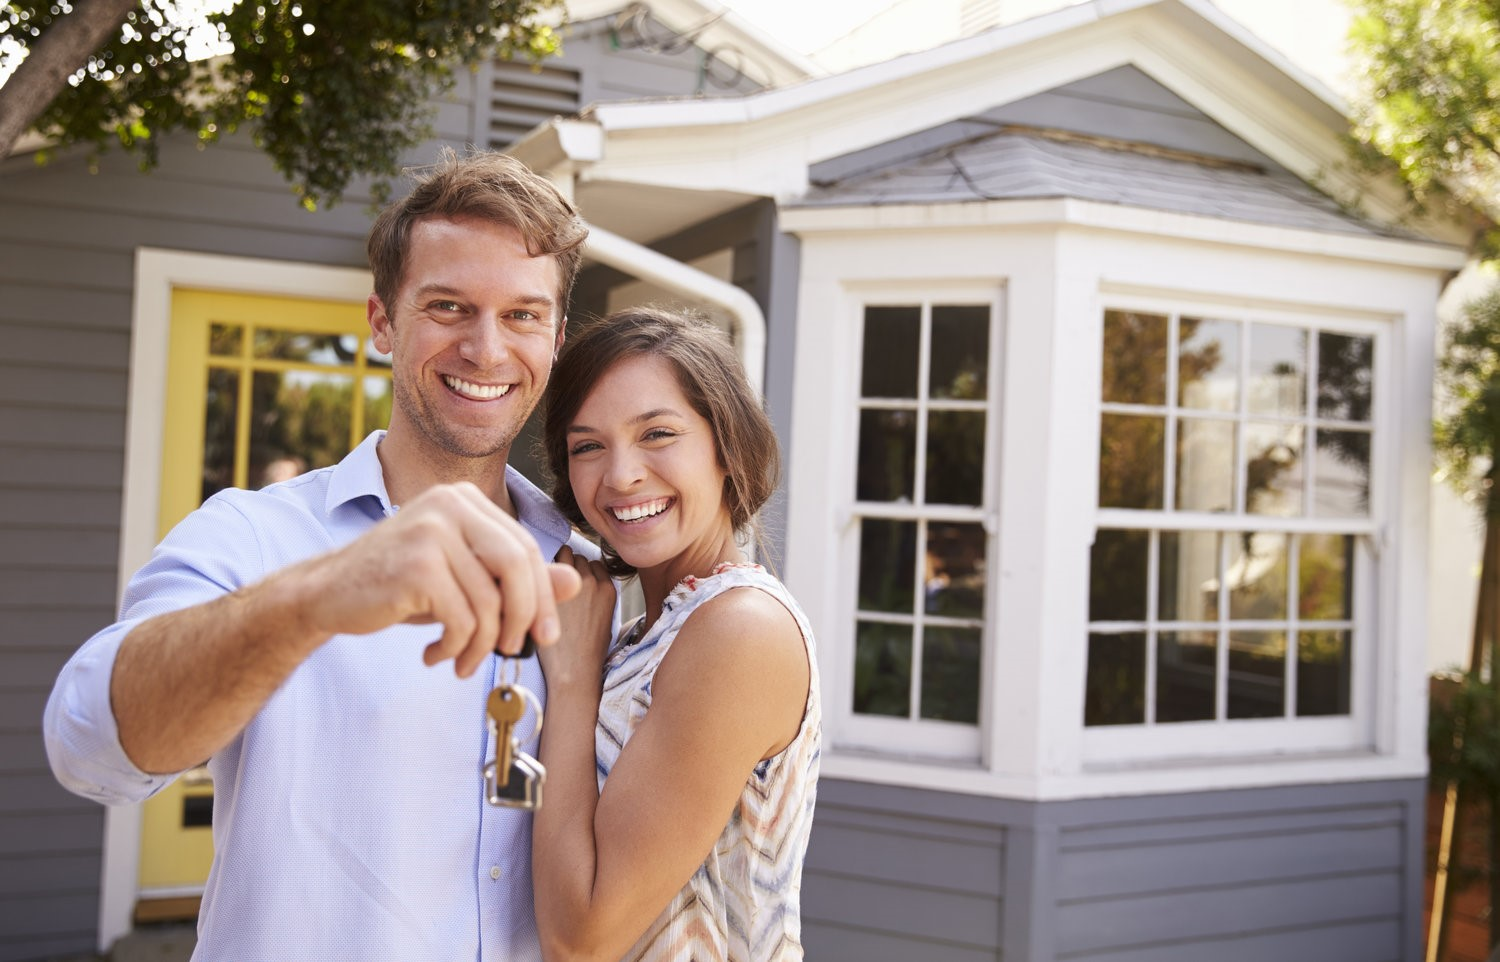 Homeownership is Awesome!